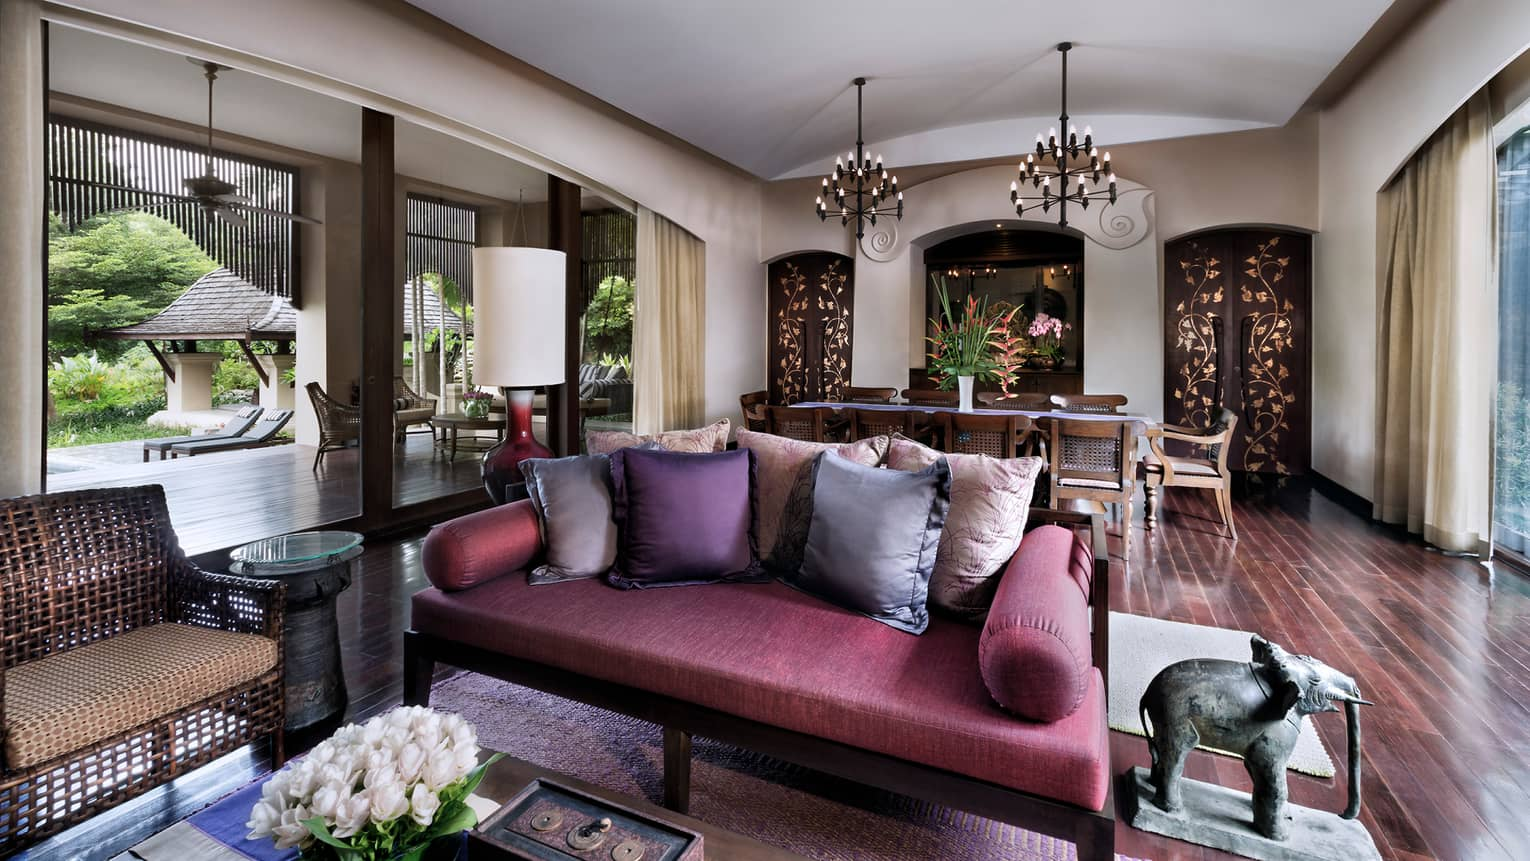 Family Residence living room with purple loveseat, accent pillows, elephant statue in front of dining room